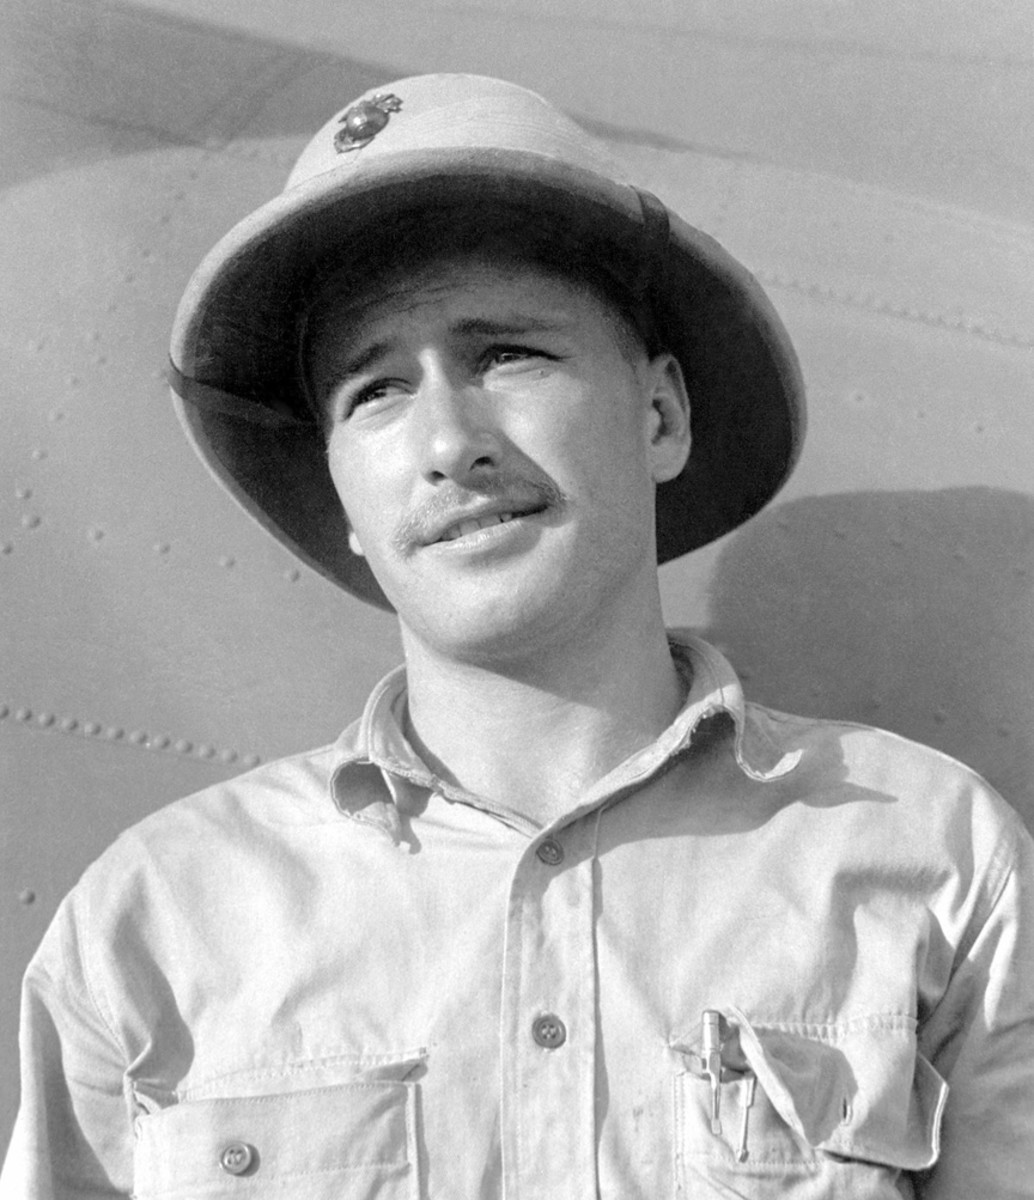 United States Marine Corps Captain (CPT) Gregory K. Loesch wearing a pressed fiber helmet.